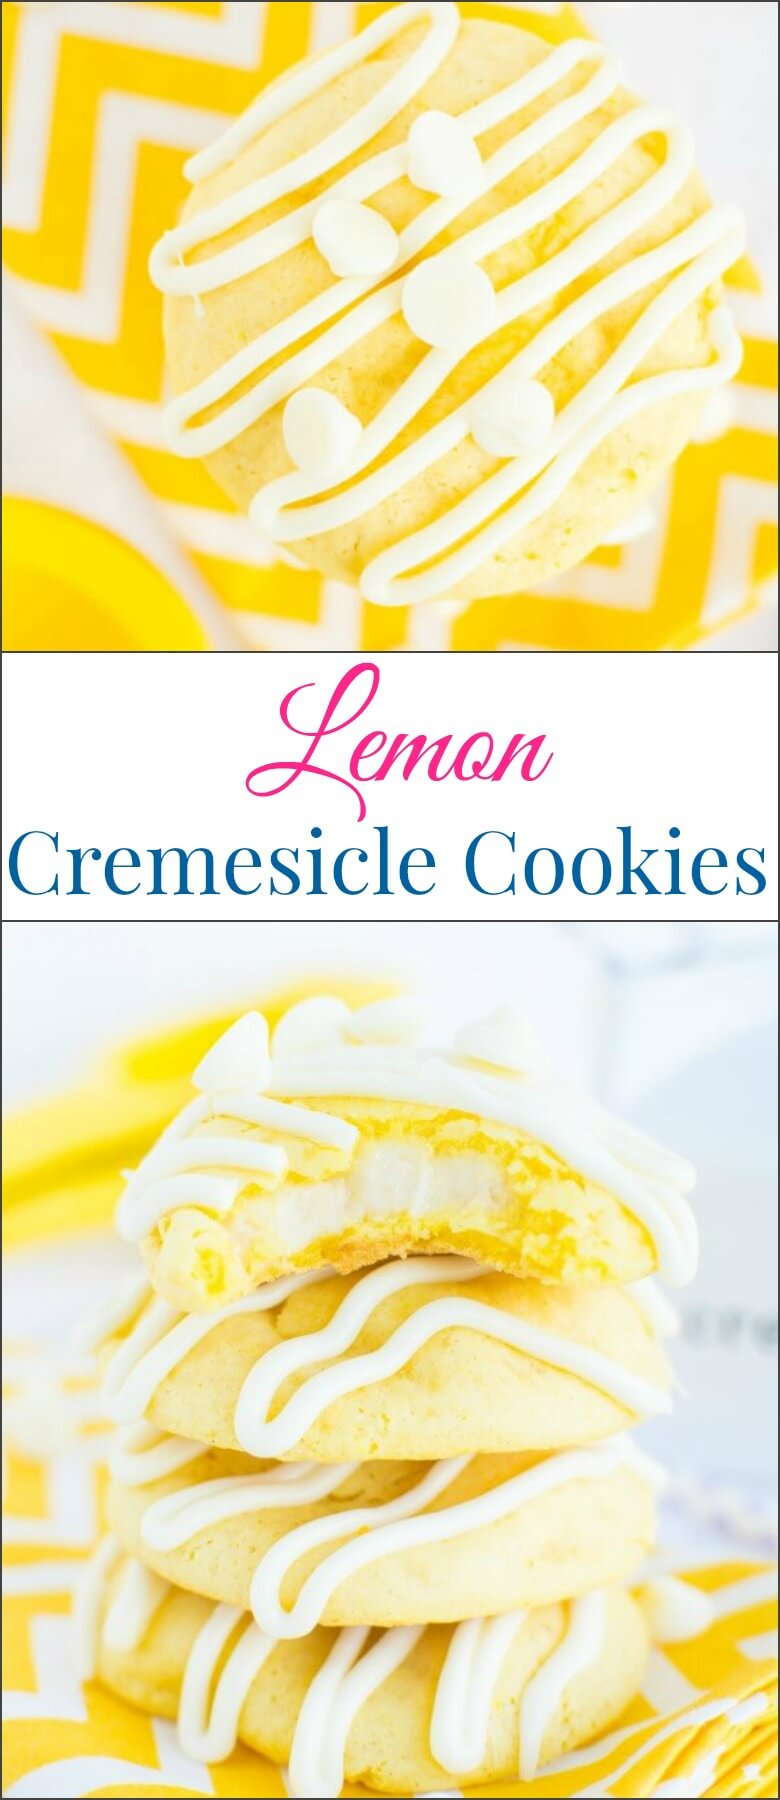 Soft and chewy lemon cremesicle cookies stuffed with a sweet, tangy cream cheese filling and drizzled in white chocolate! ohsweetbasil.com